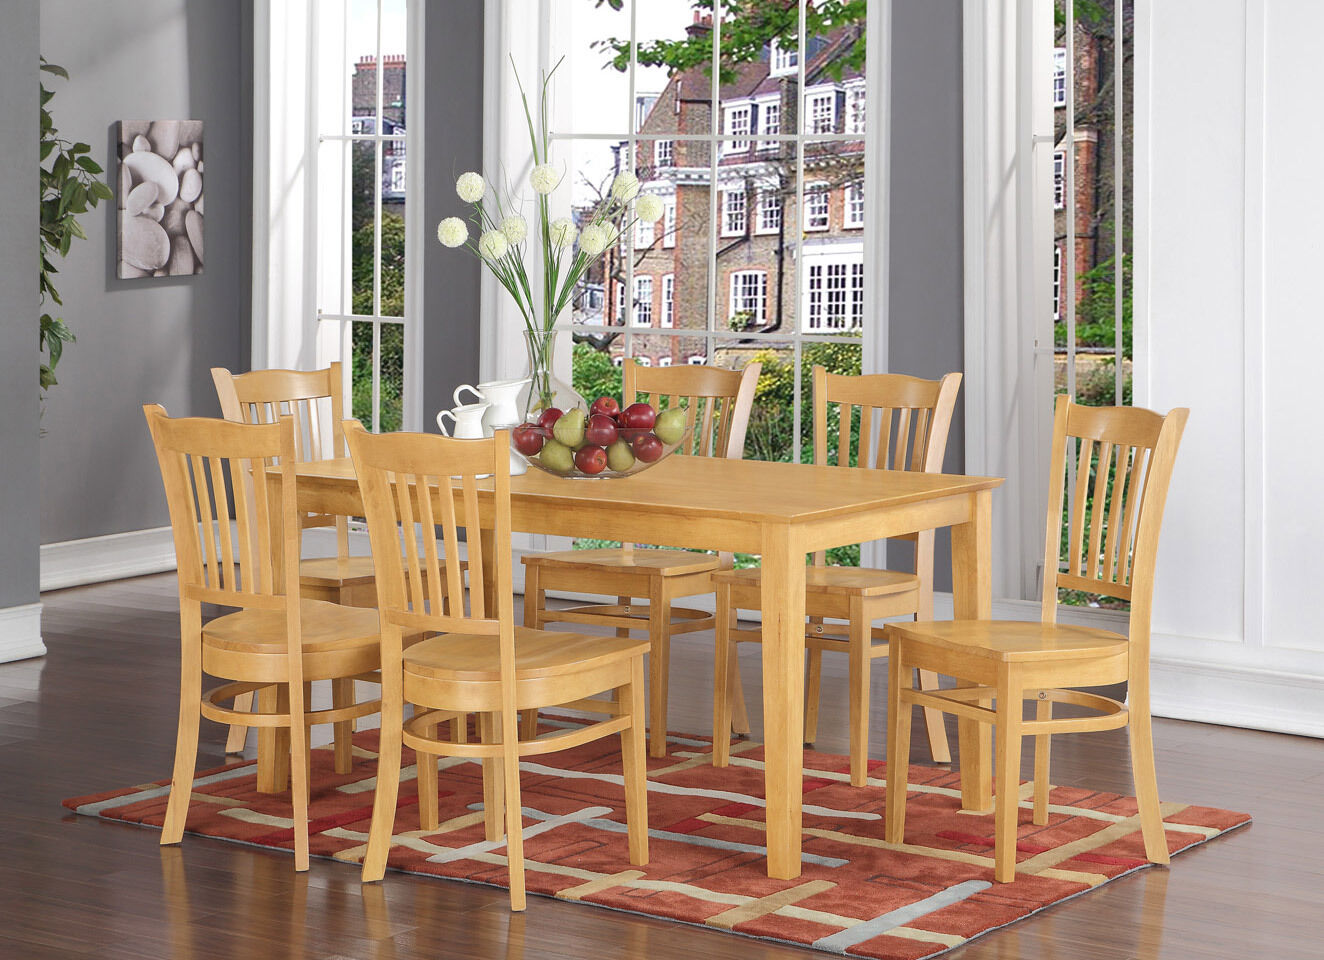 7pc Canfield Iii Country Style Oak Finish Wood Pedestal Dining Table Set For Sale Online Ebay